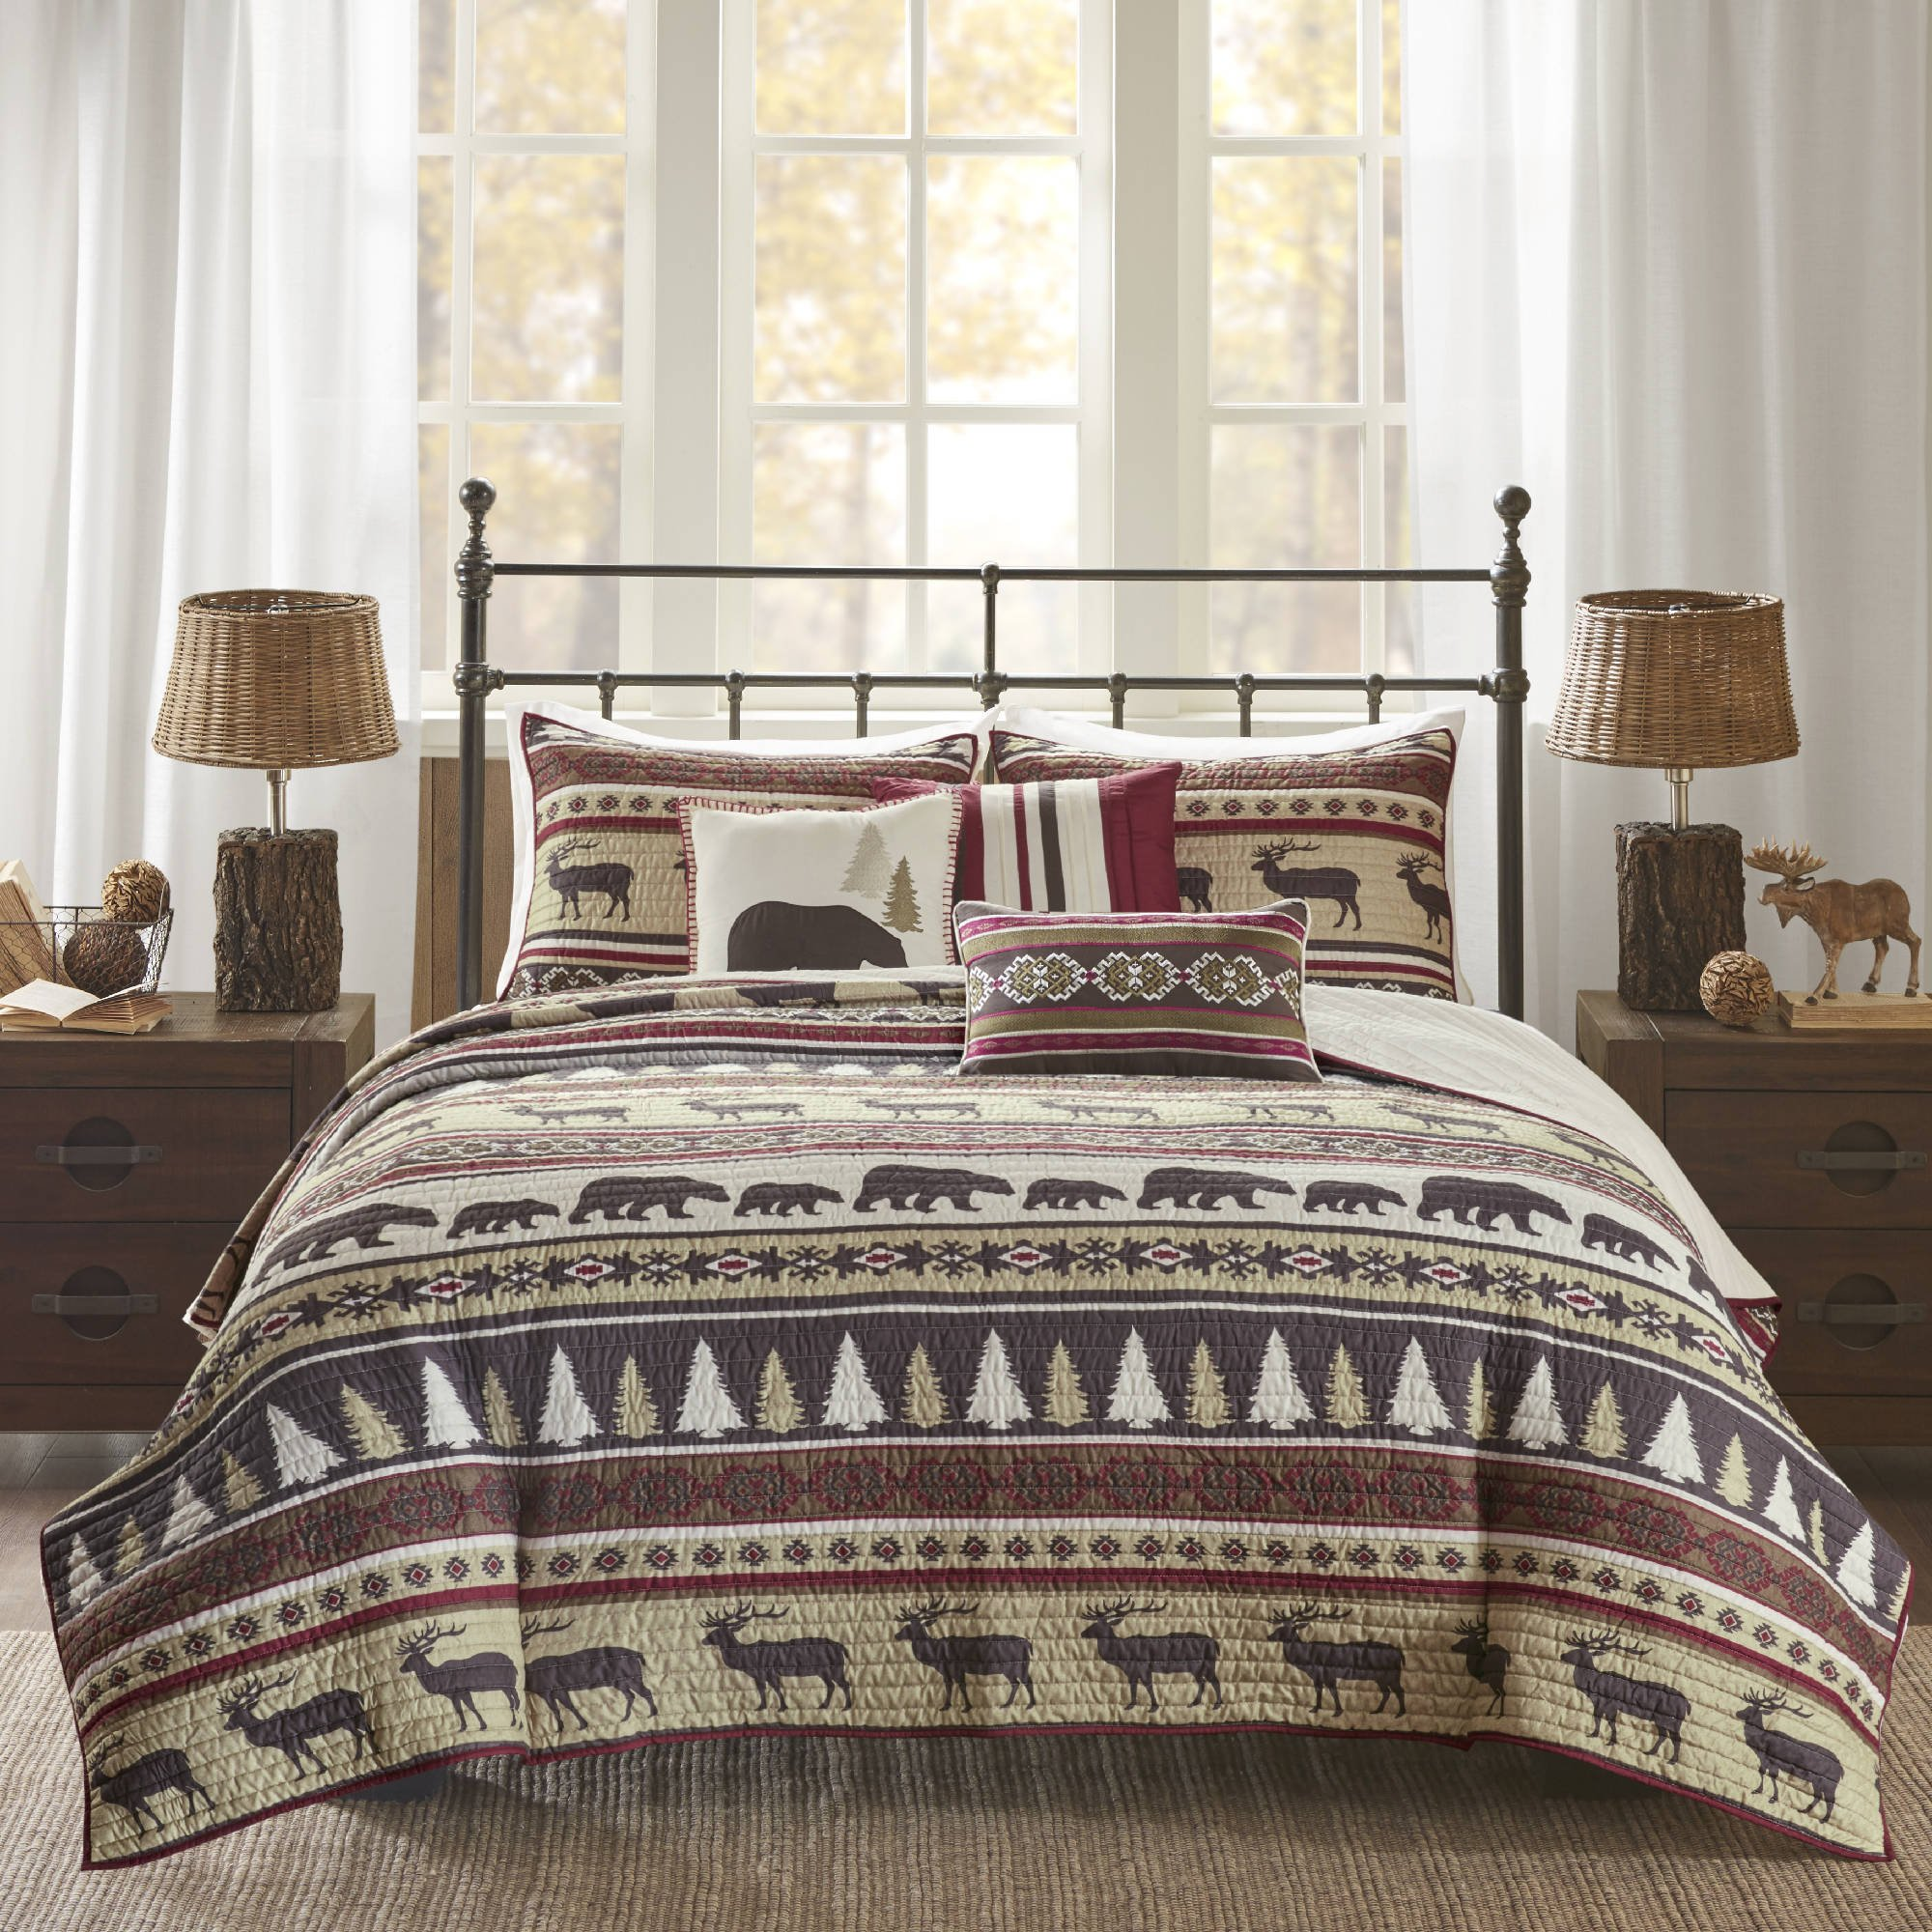 6 Piece Red Animal Print Full Queen Coverlet Set, Lodge Cabin Hunting Nature Theme Bedding, Horizontal Stripes Warm Cozy Bear Moose Evergreen Tree Print Diamond Shaped, Polyester